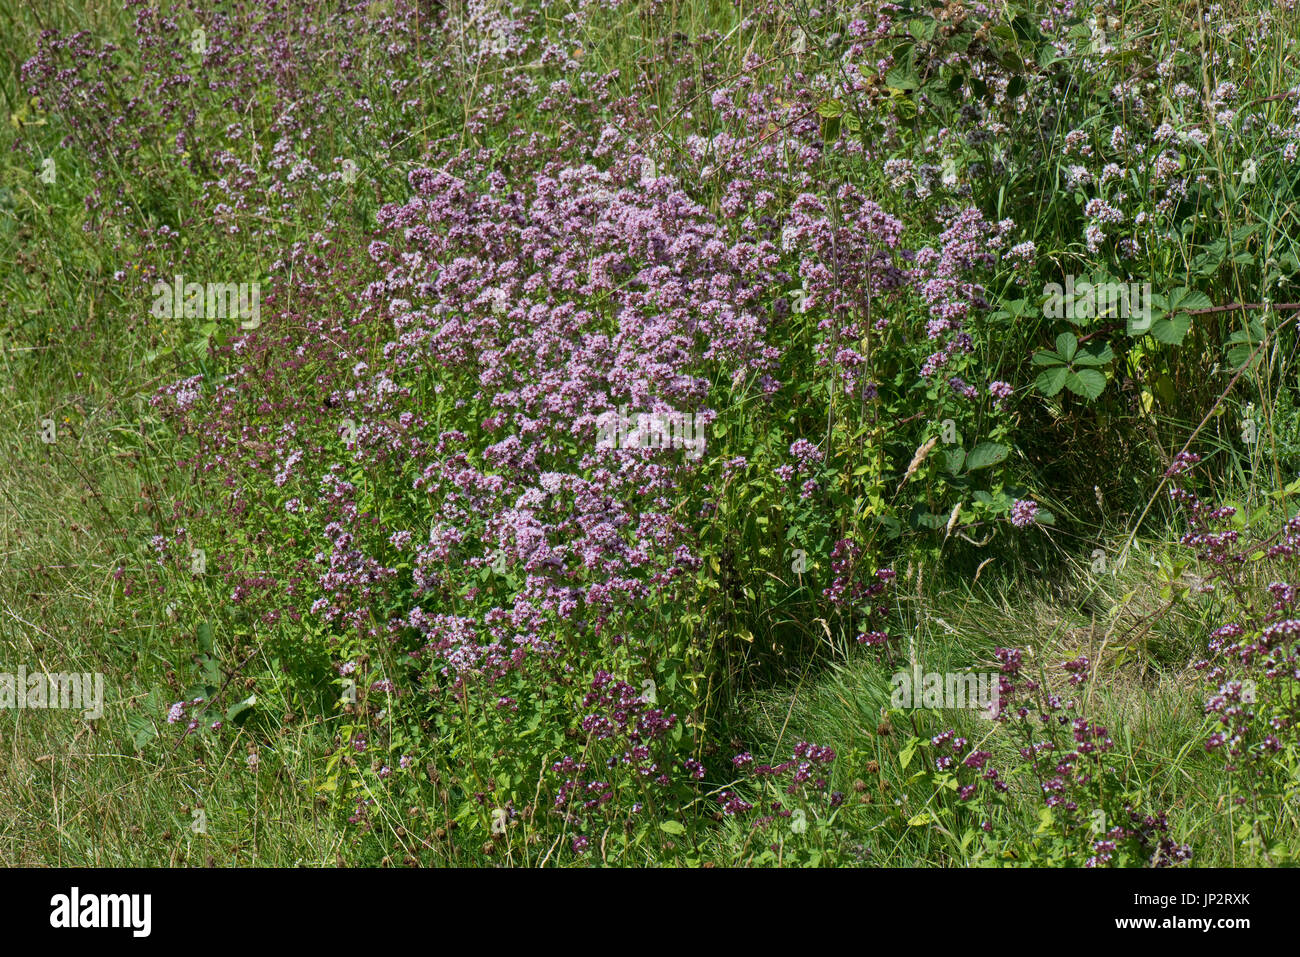 Marjoram or oregano, Origanum vulgare, flowering in old chalk downland grassland in summer, Berkshire, July - Stock Image